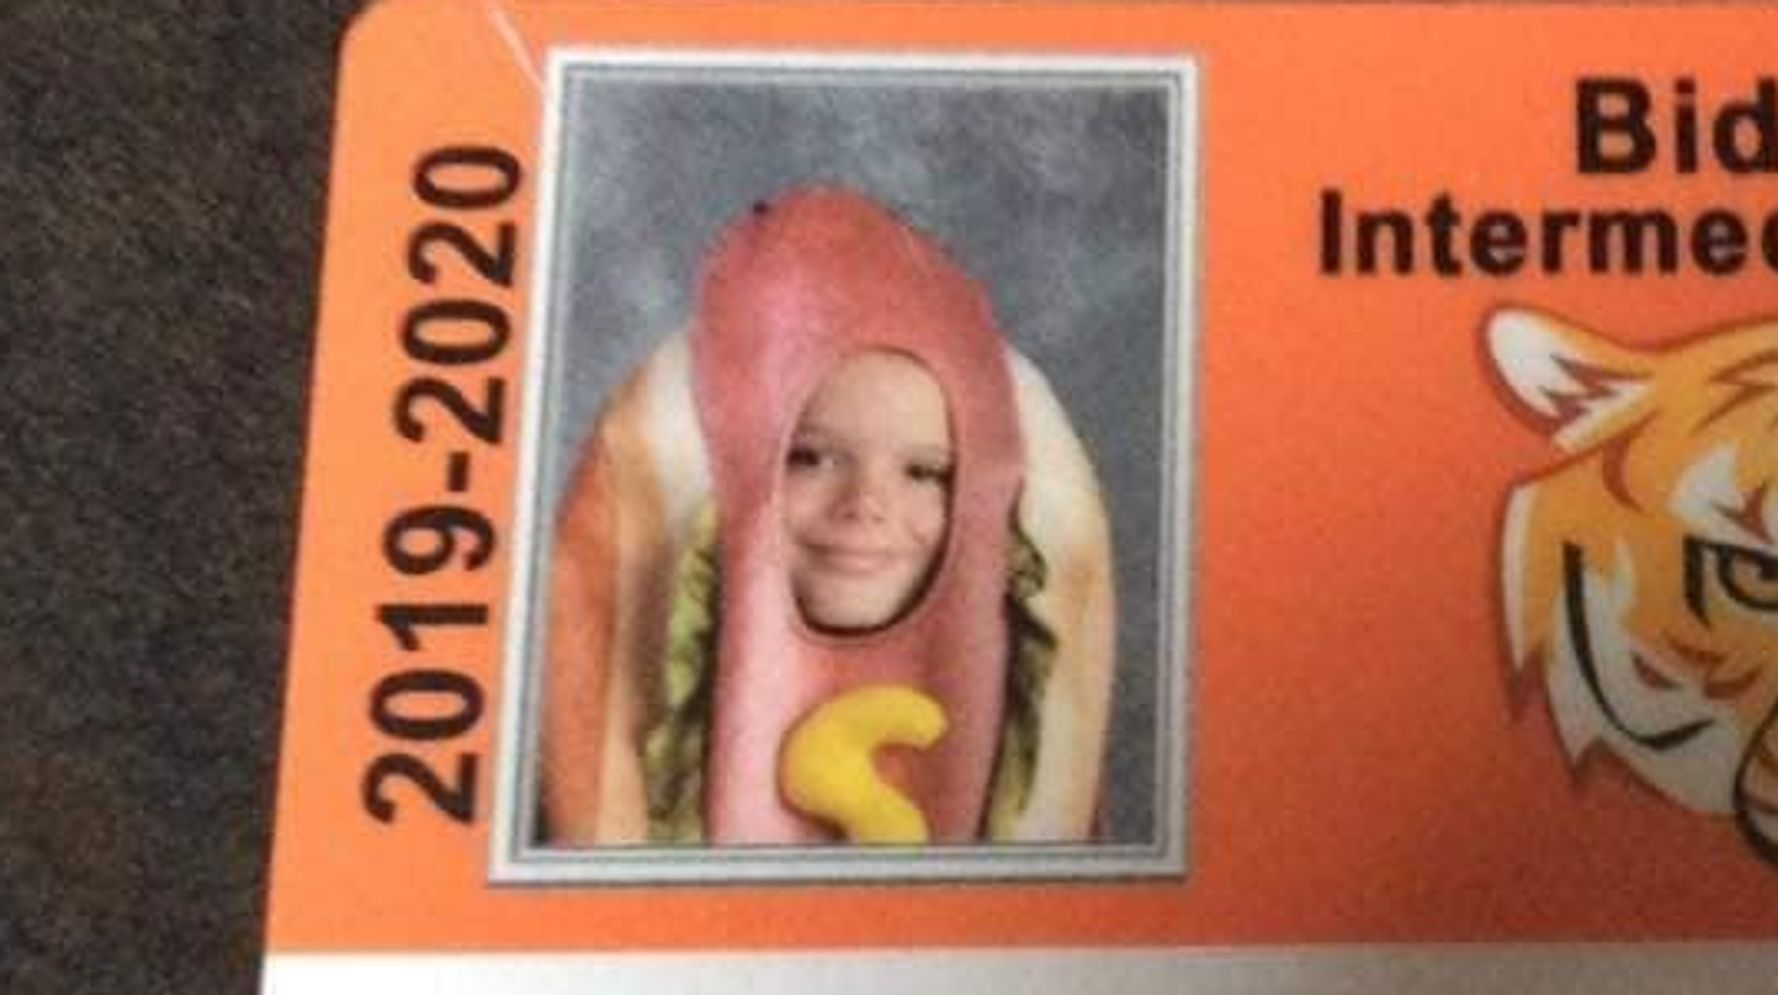 Parents Dare 9-Year-Old To Dress As A Hot Dog On Picture Day